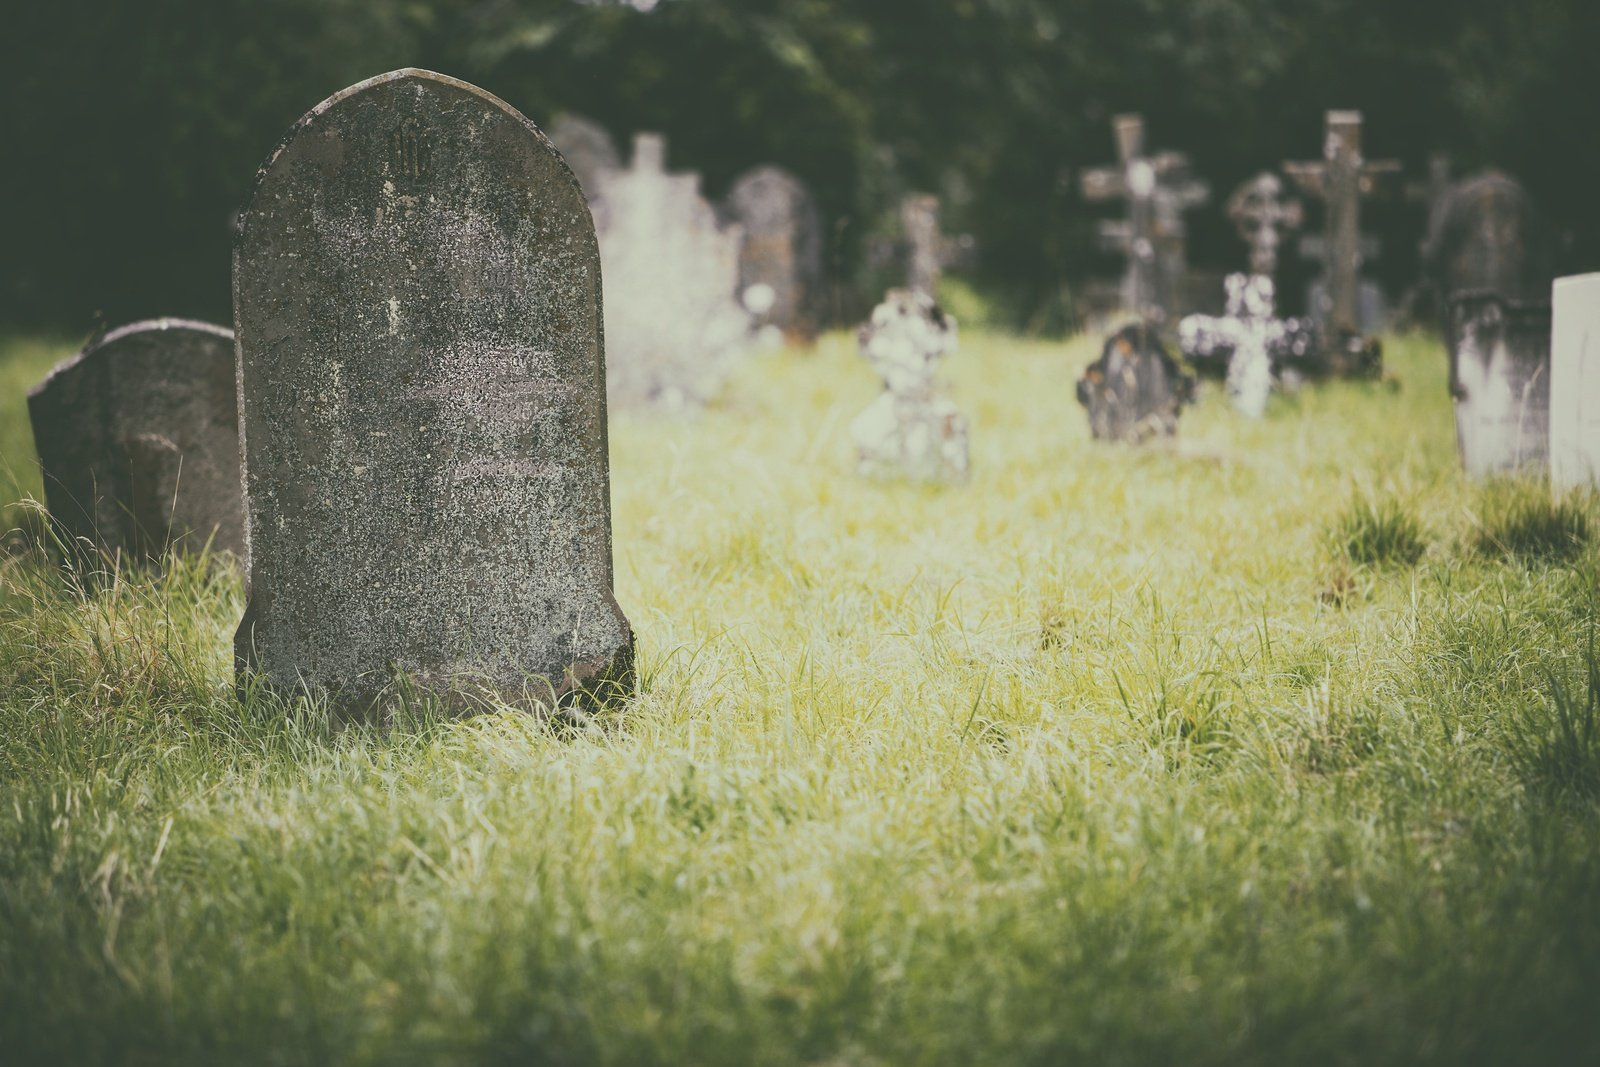 bigstock-Tombstone-and-graves-in-an-anc-154497446